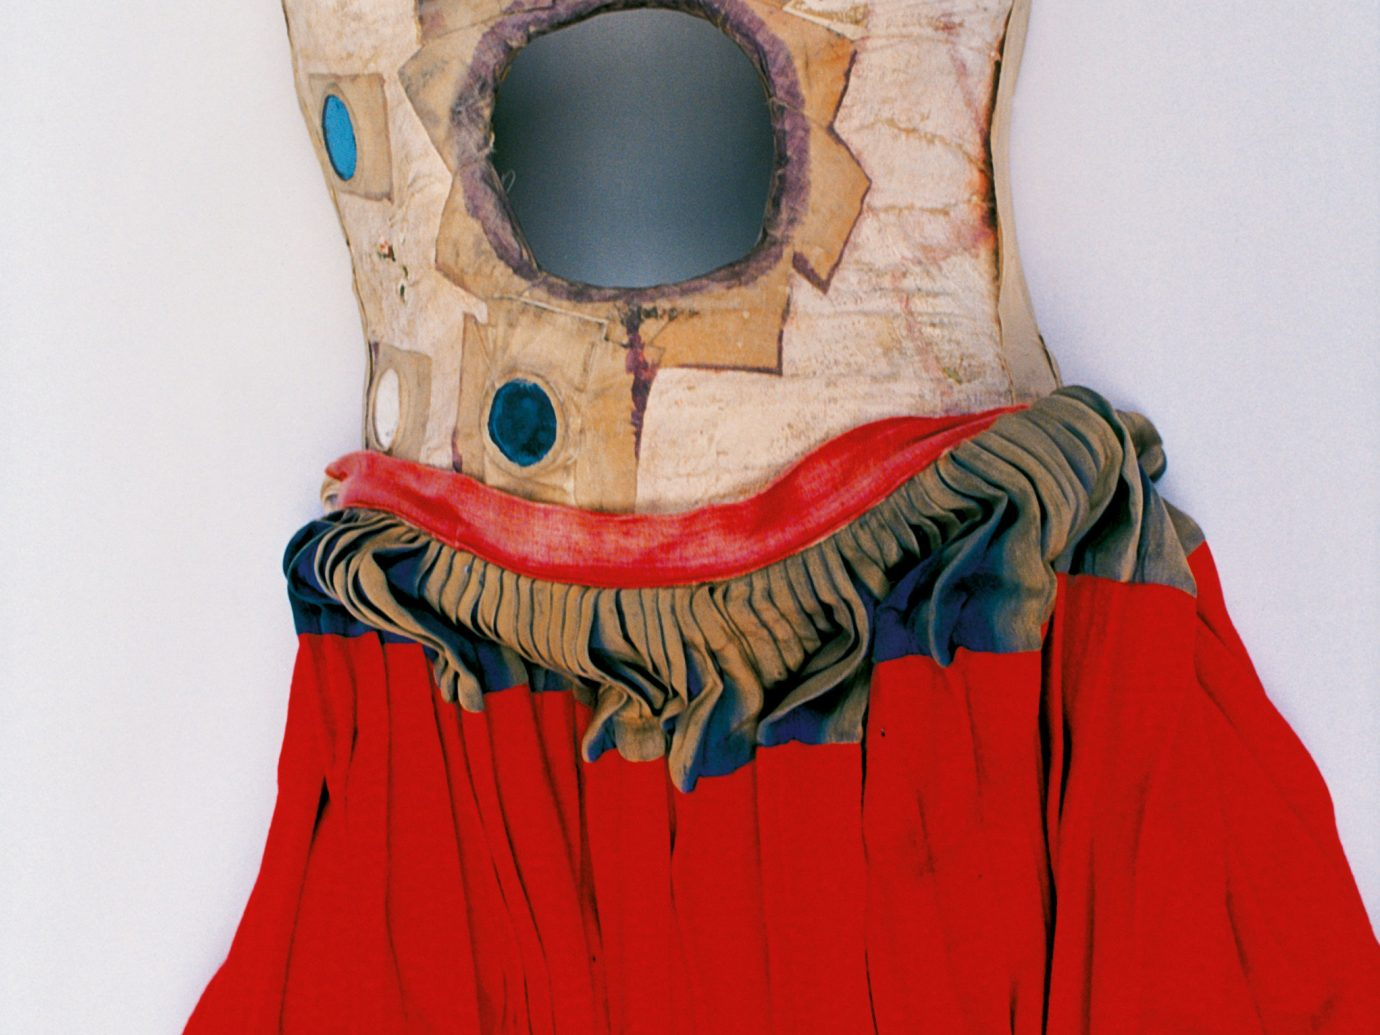 Arts + Culture wall clothing red indoor head costume art dress illustration outerwear